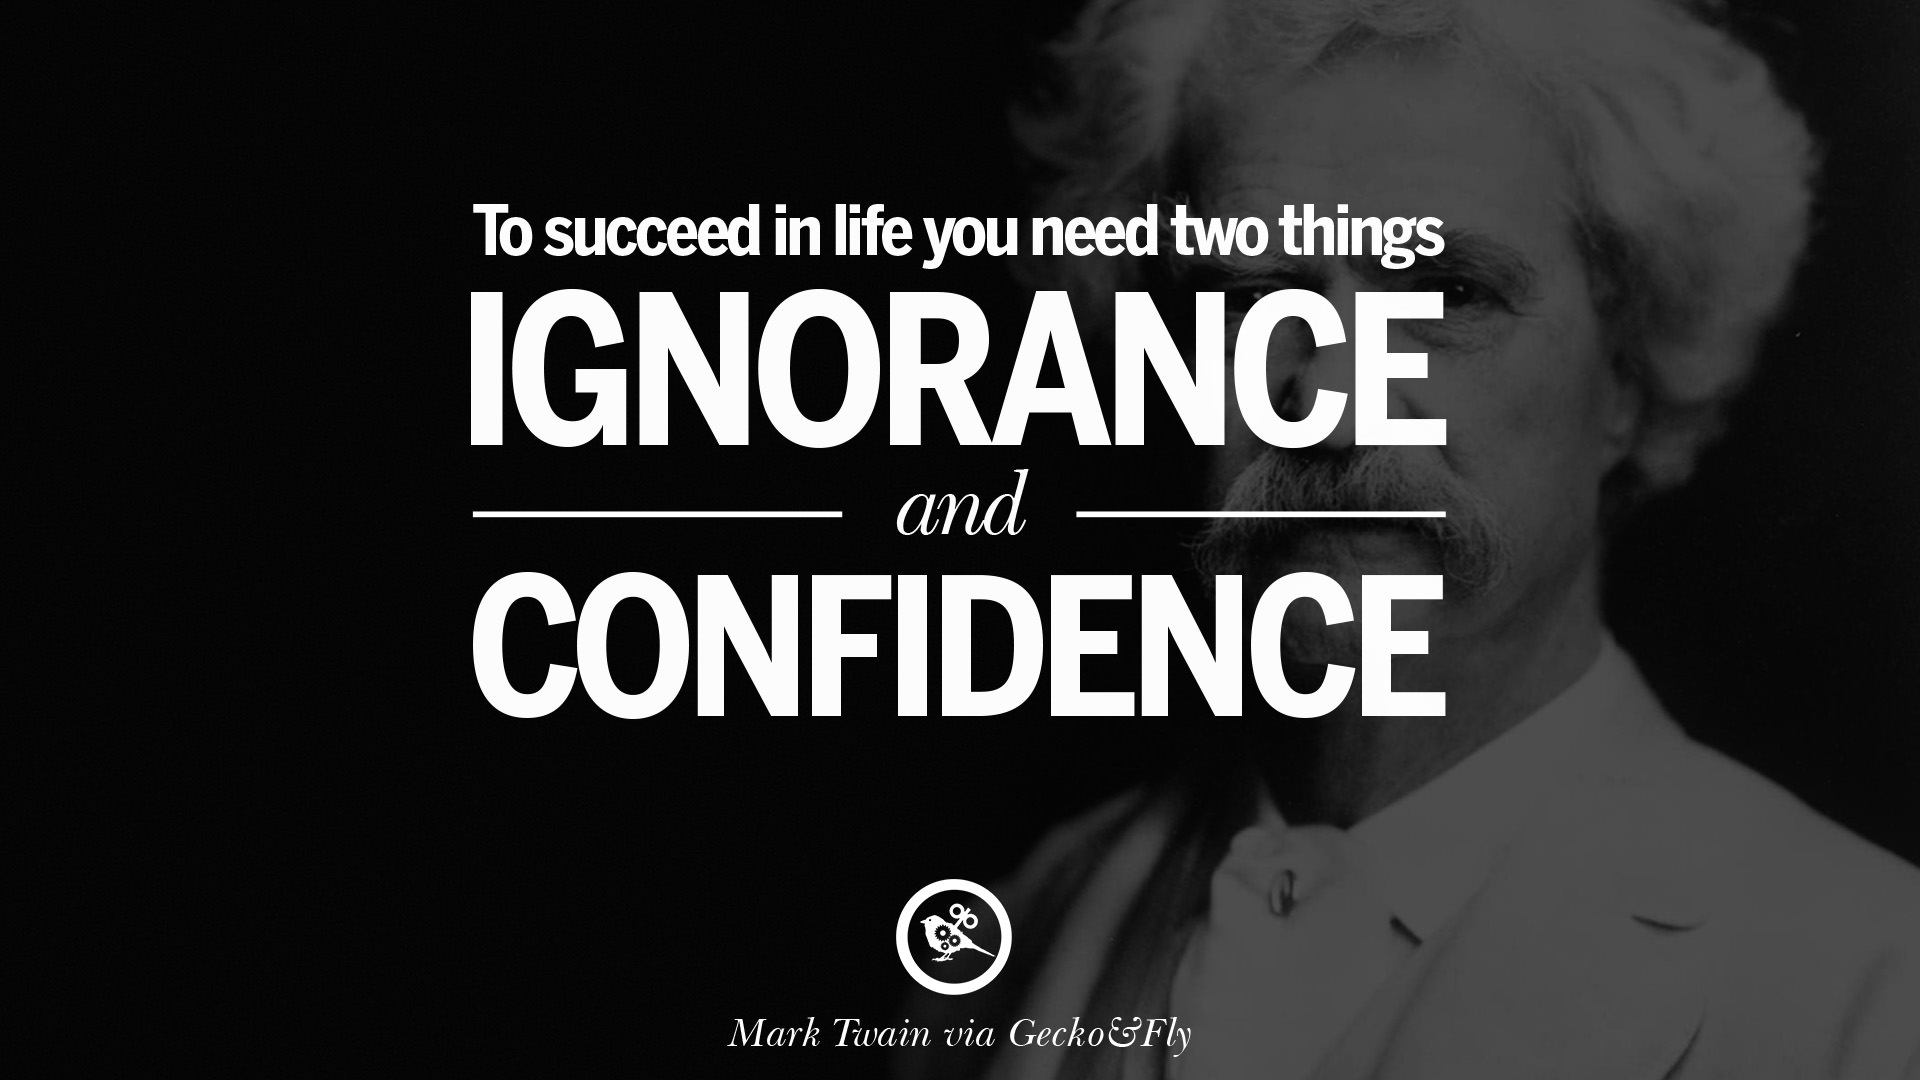 18 Wise Quotes By Mark Twain On Wisdom, Human Nature, Life ...